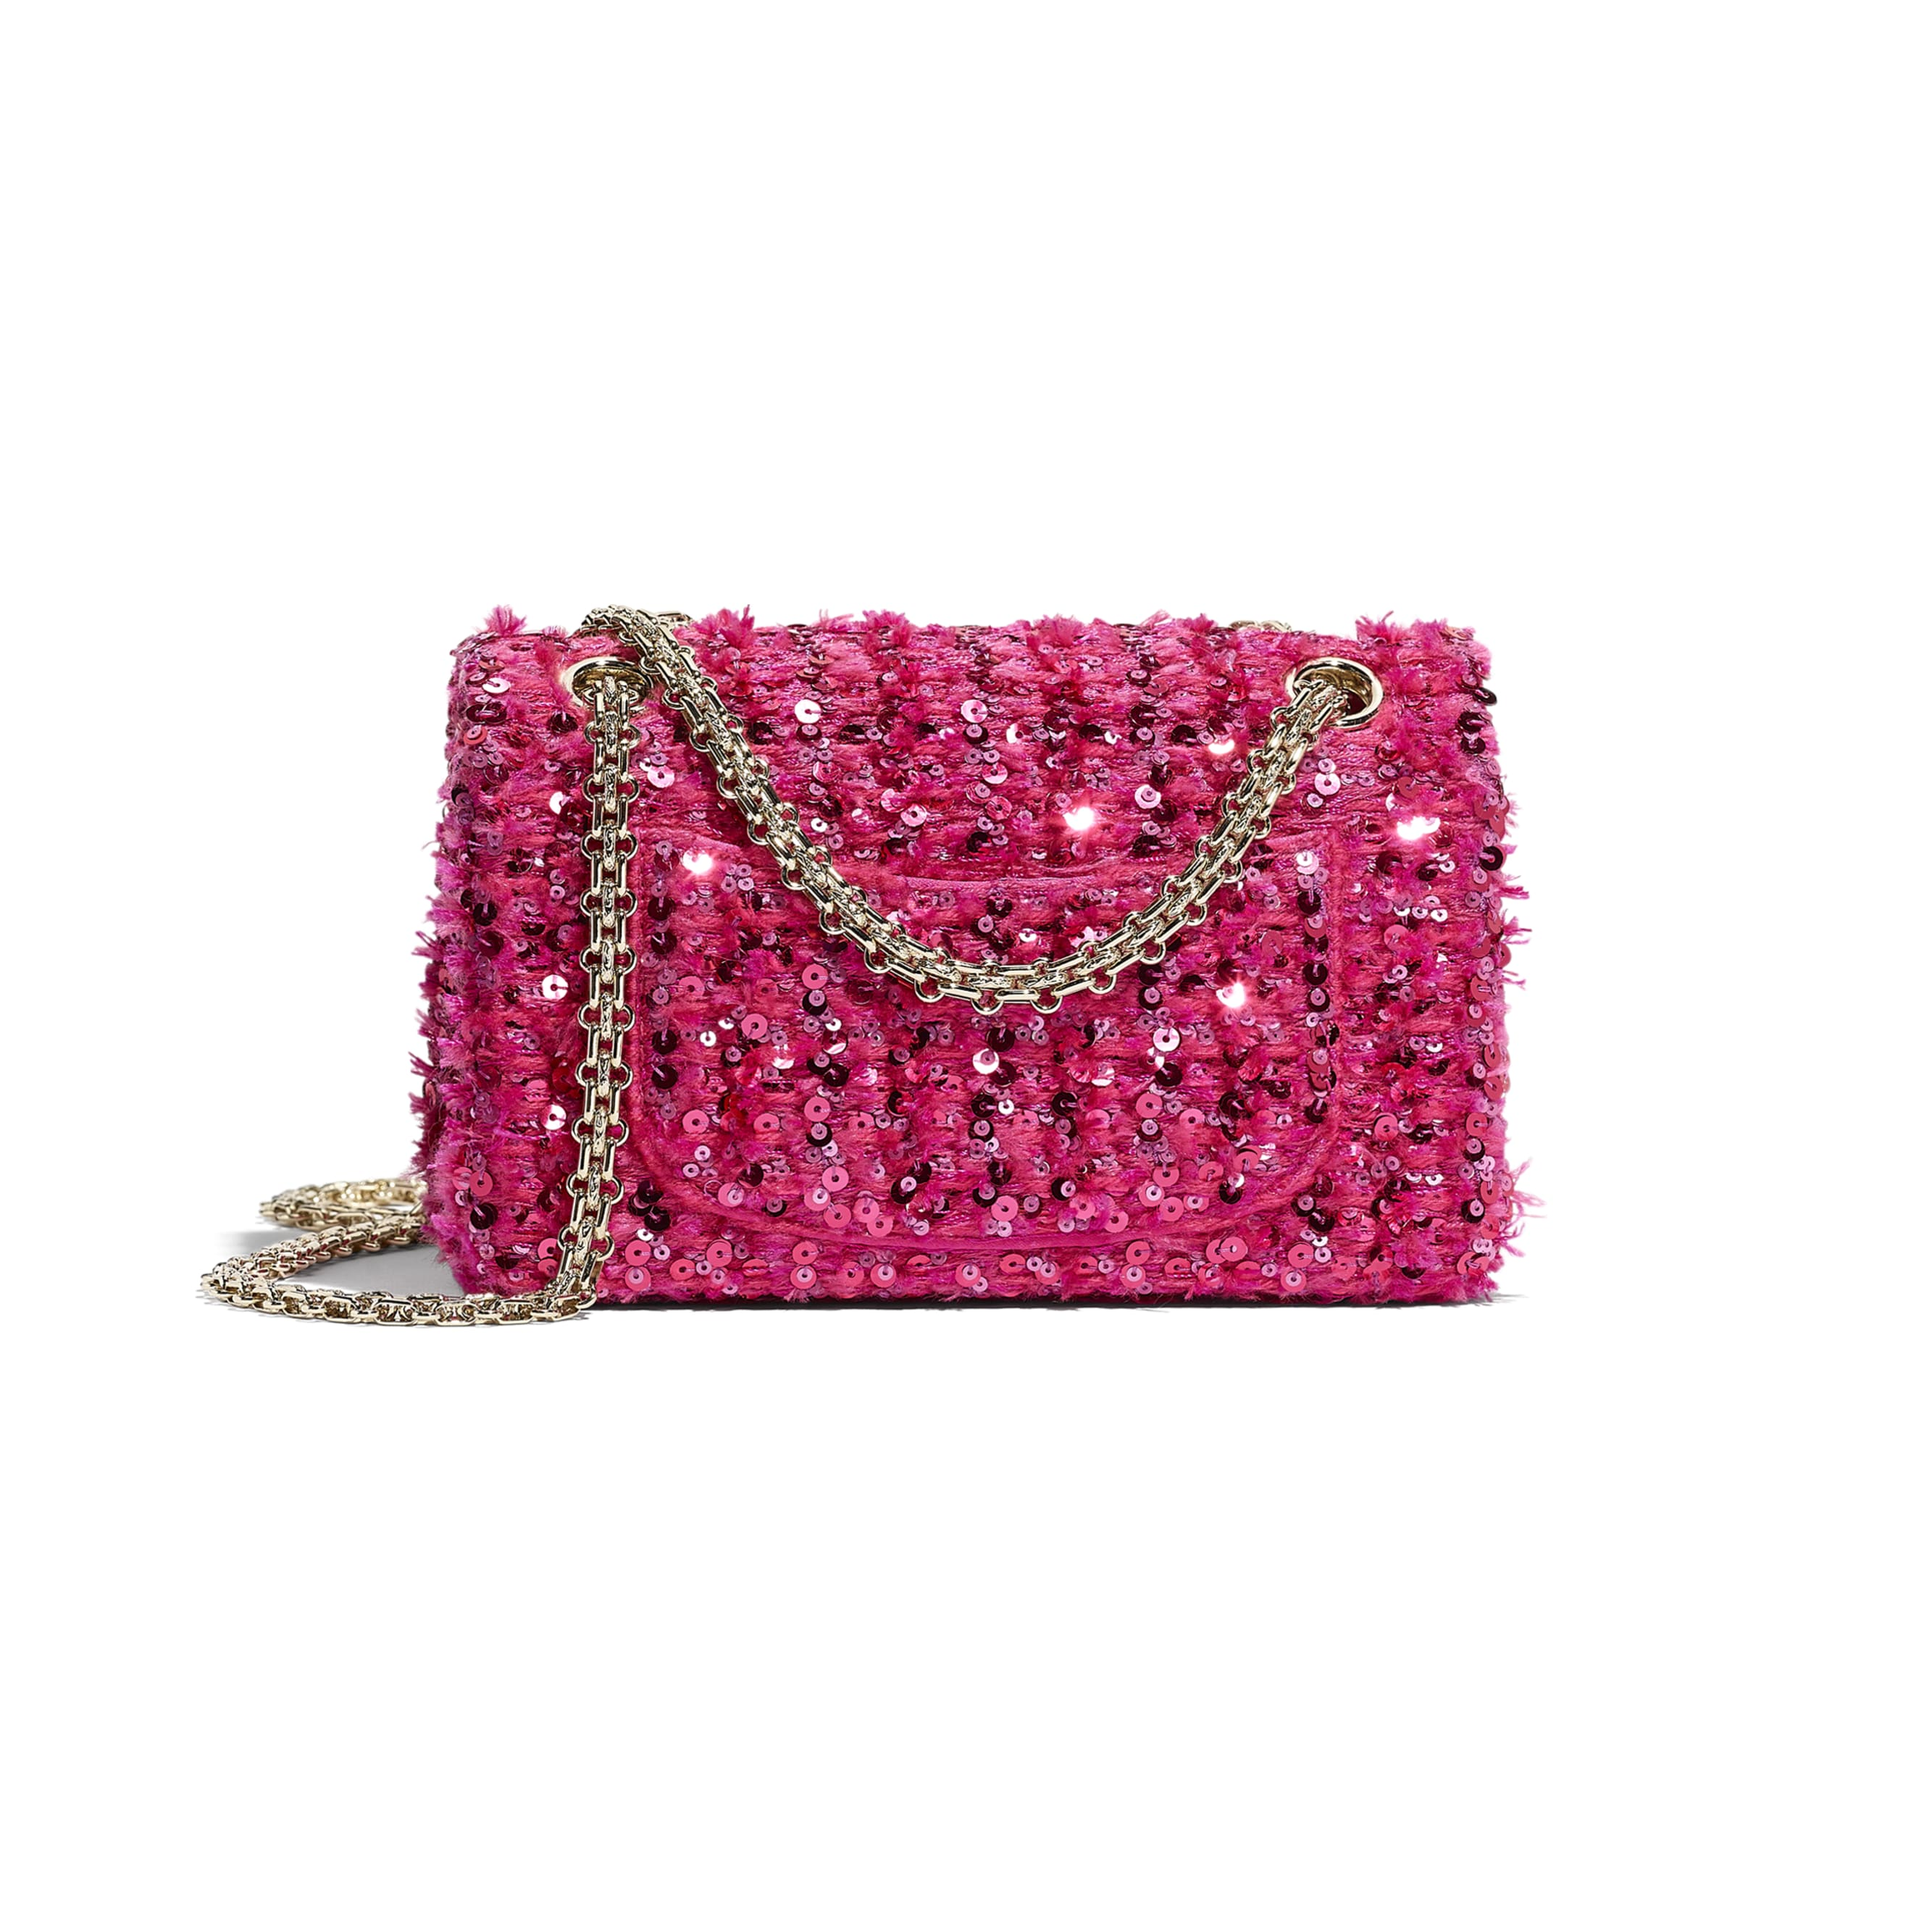 Small 2.55 Handbag - Pink - Sequins & Gold-Tone Metal - CHANEL - Alternative view - see standard sized version